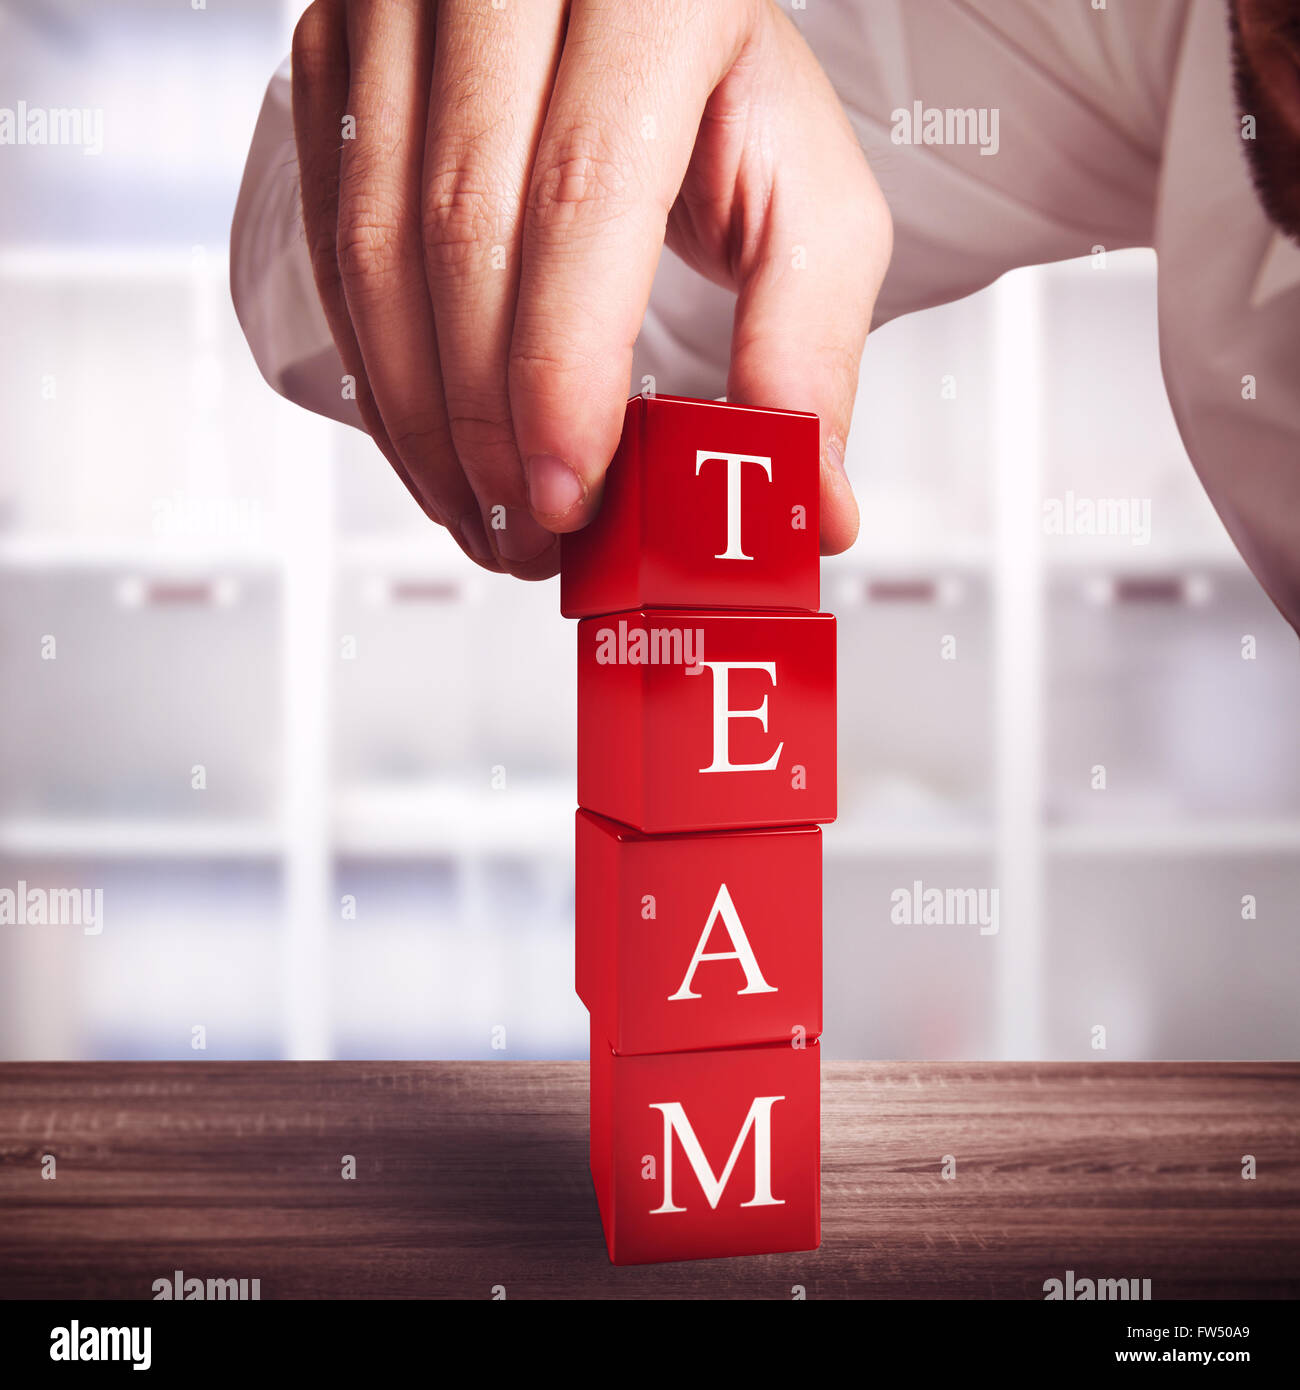 Building a team - Stock Image